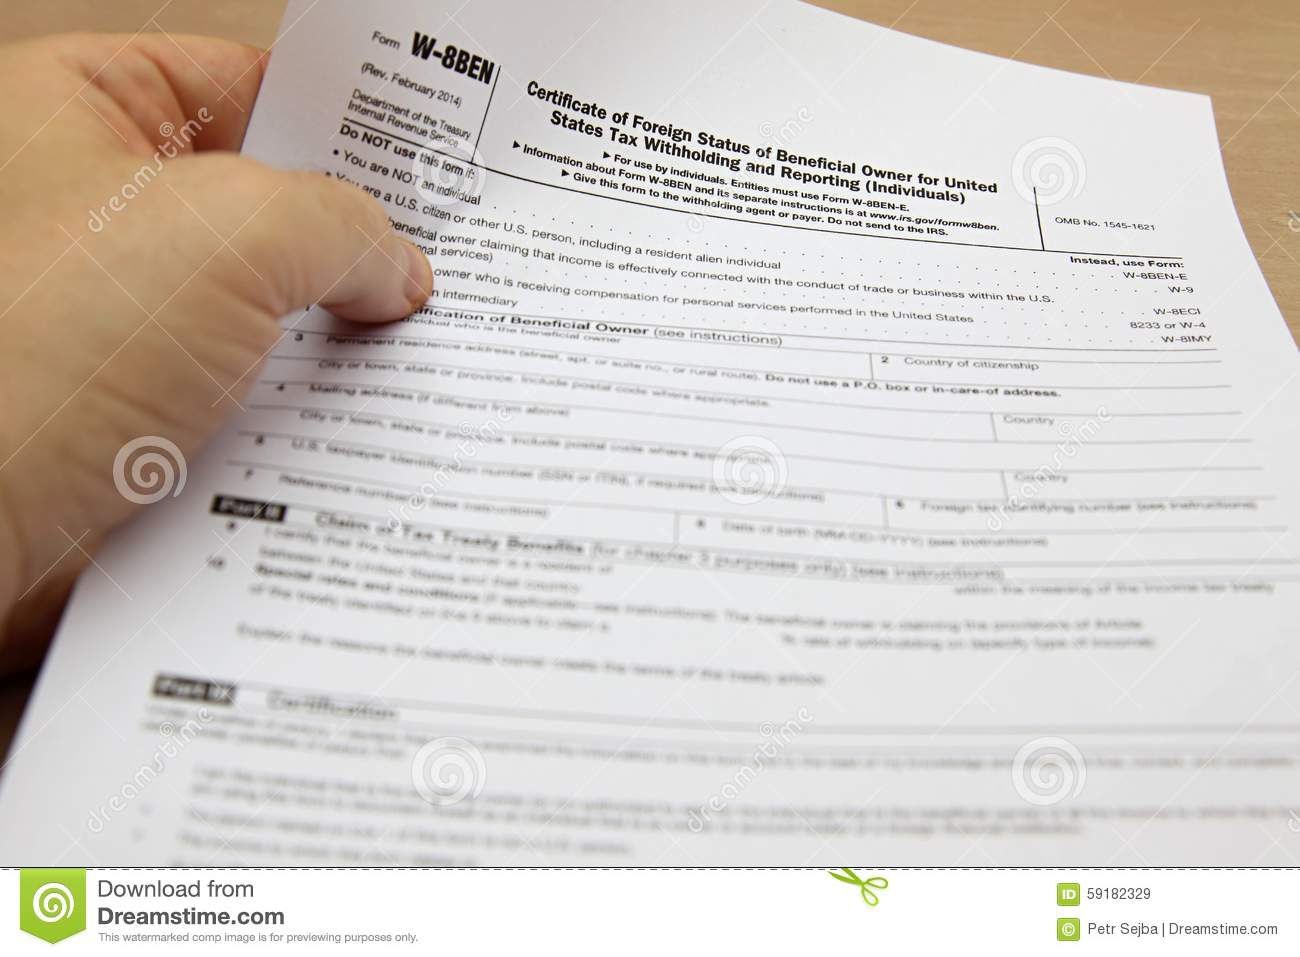 Download A Hand Holding The W-8BEN Form Stock Image - Image of bureaucracy, financial: 59182329